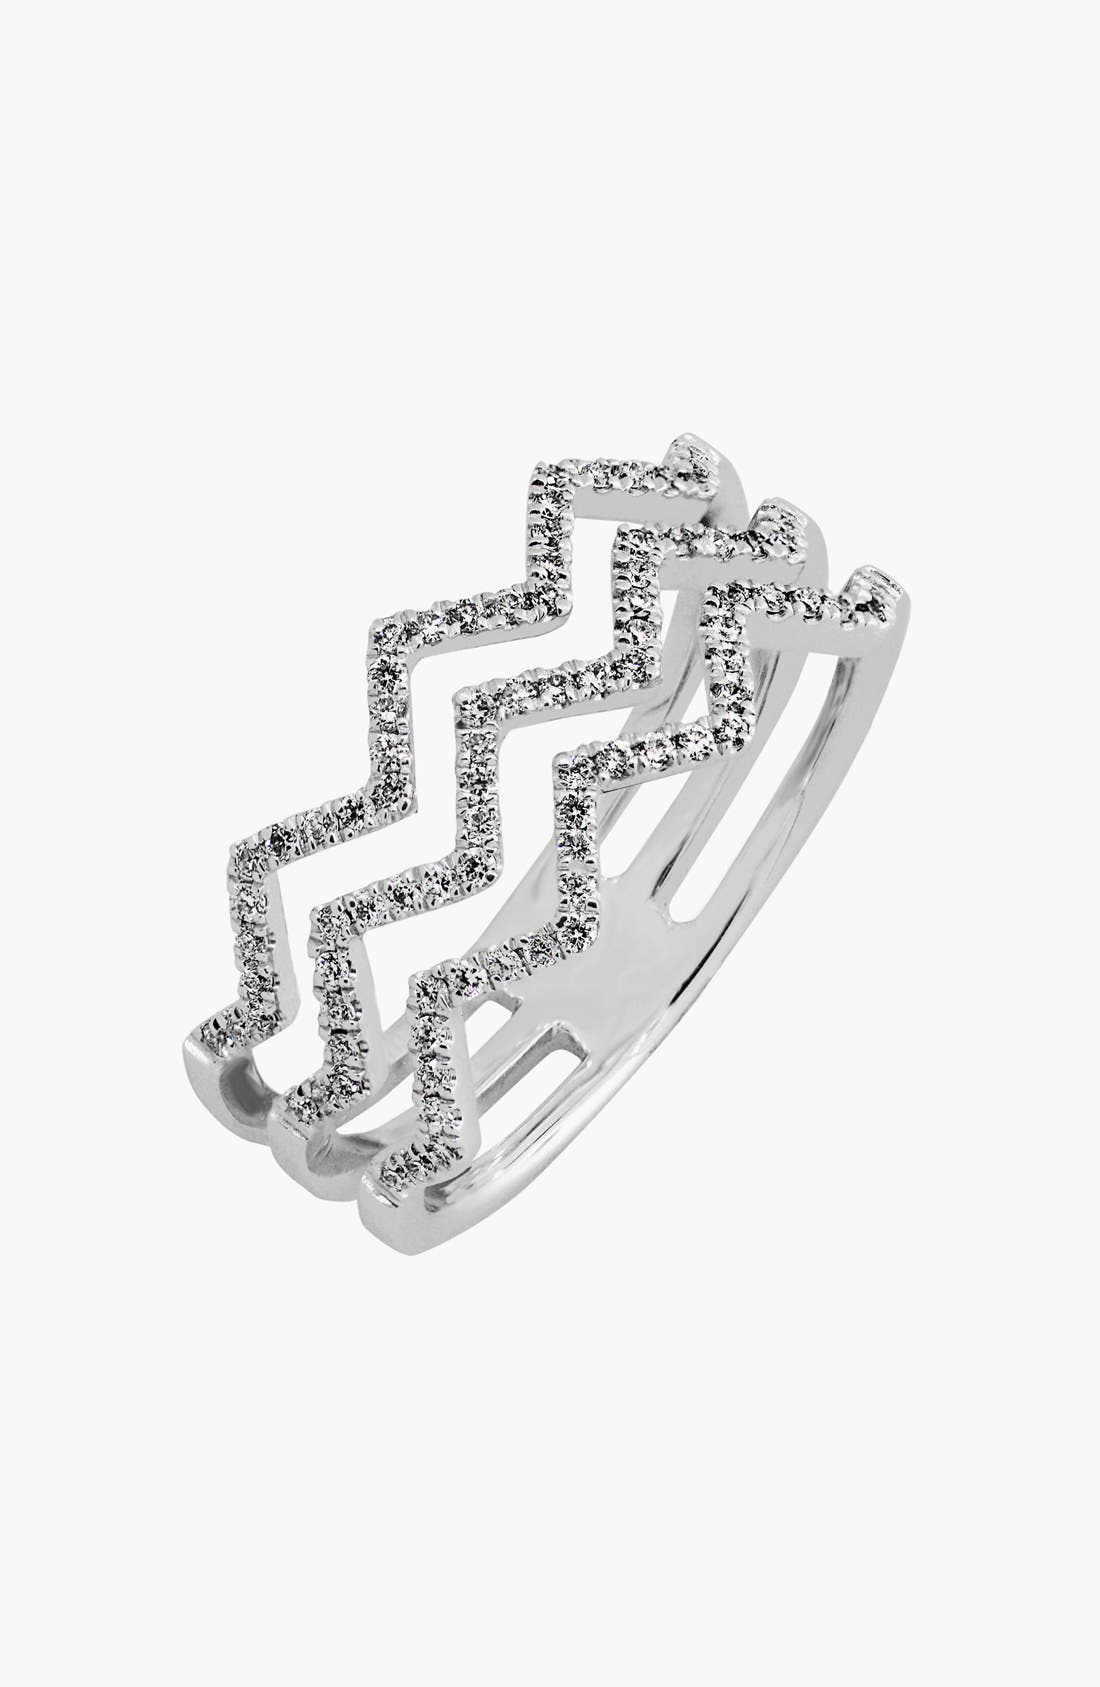 Main Image - Bony Levy 'Prism' 3-Row Diamond Ring (Limited Edition) (Nordstrom Exclusive)